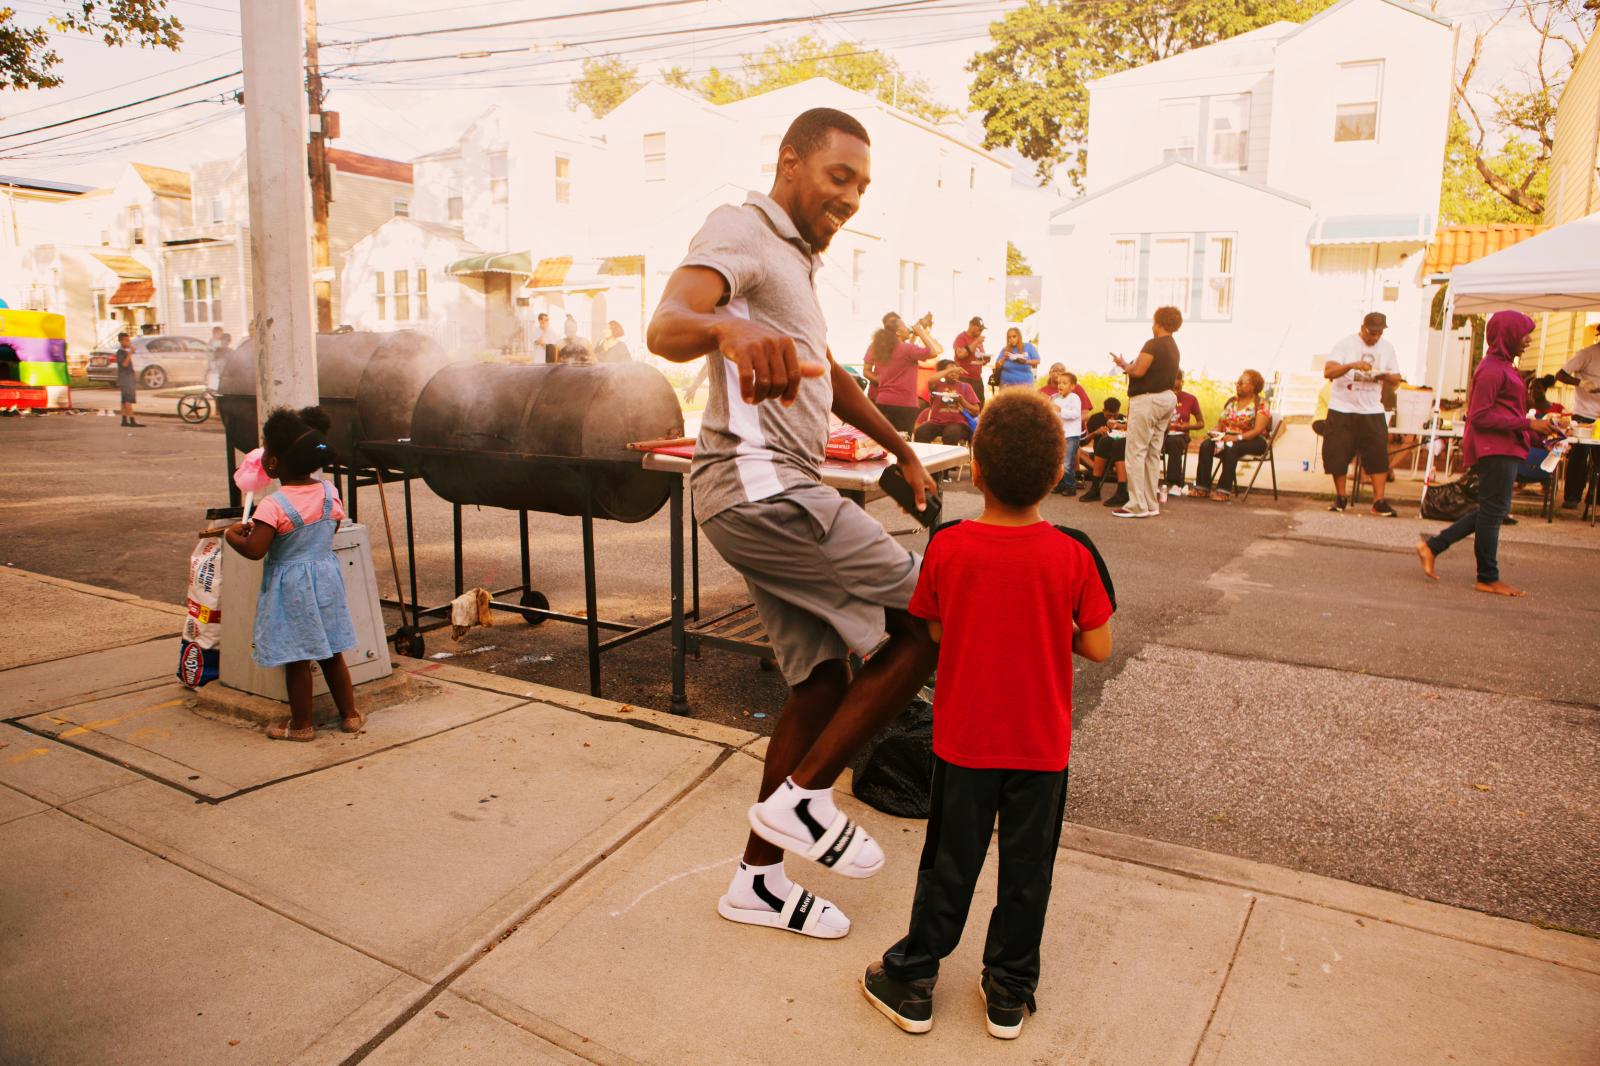 Normando Nelson dances during the block party in Laurelton neighborhood in Queens, New York hosted by Sudan Deane. Nelson loves to see old and young people in the community become one during the block party.